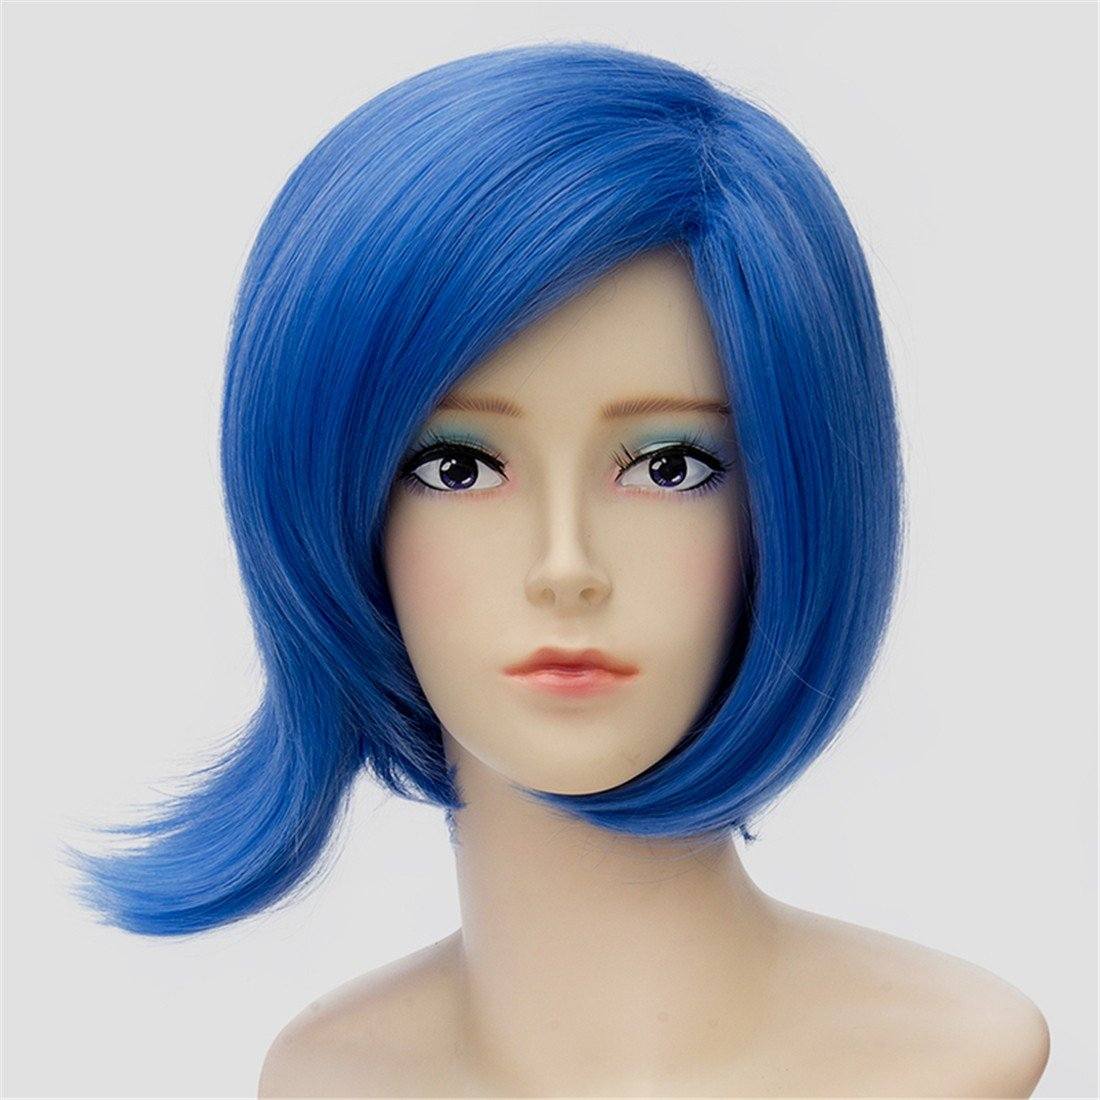 Amazon.com : Inside Out Short Blue Straight Cosplay Anime ...